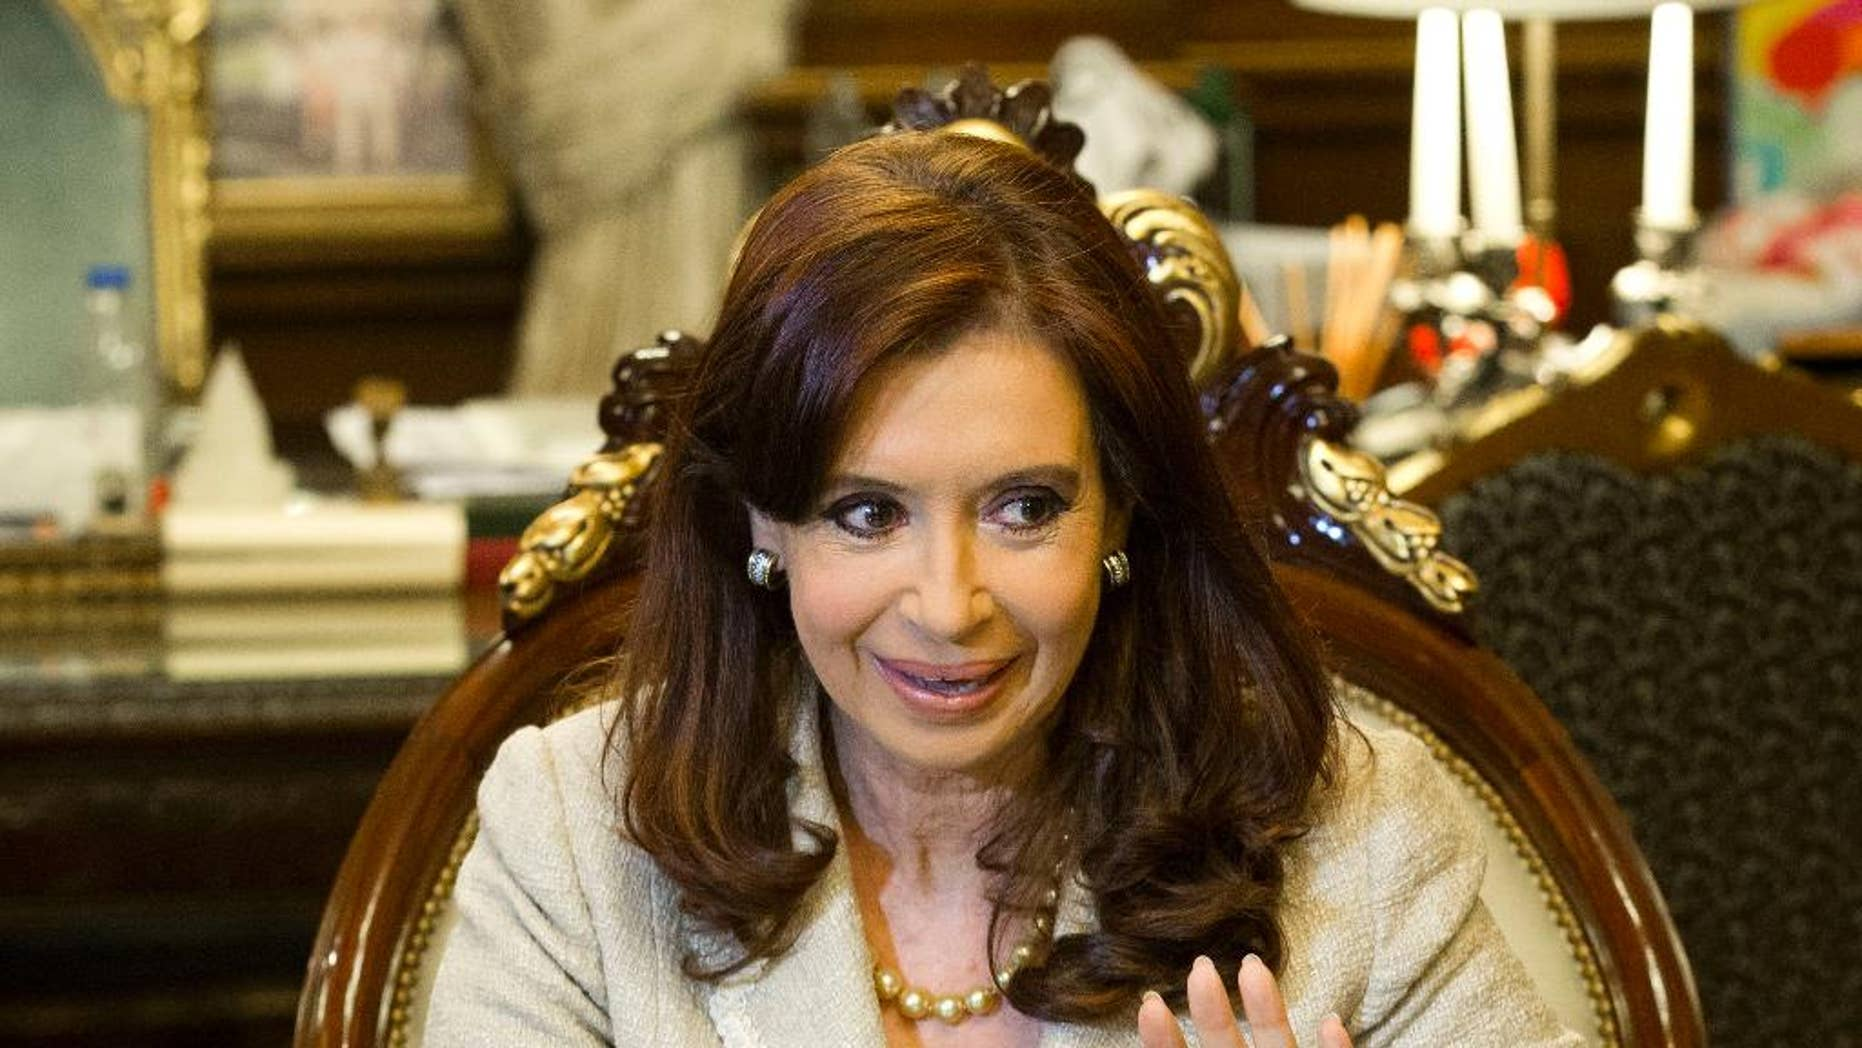 FILE - In this April 23, 2014 file photo, Argentine President Cristina Fernandez speaks during a meeting at Casa Rosada government palace in Buenos Aires, Argentina. Argentina's opponents filed their last arguments Wednesday, May 7, 2014, with the U.S. Supreme Court, urging justices to deny the South American government's appeal of a $1.4 billion debt ruling because Fernandez has repeatedly vowed not to honor any decision that goes against her. (AP Photo/Victor R. Caivano, File)